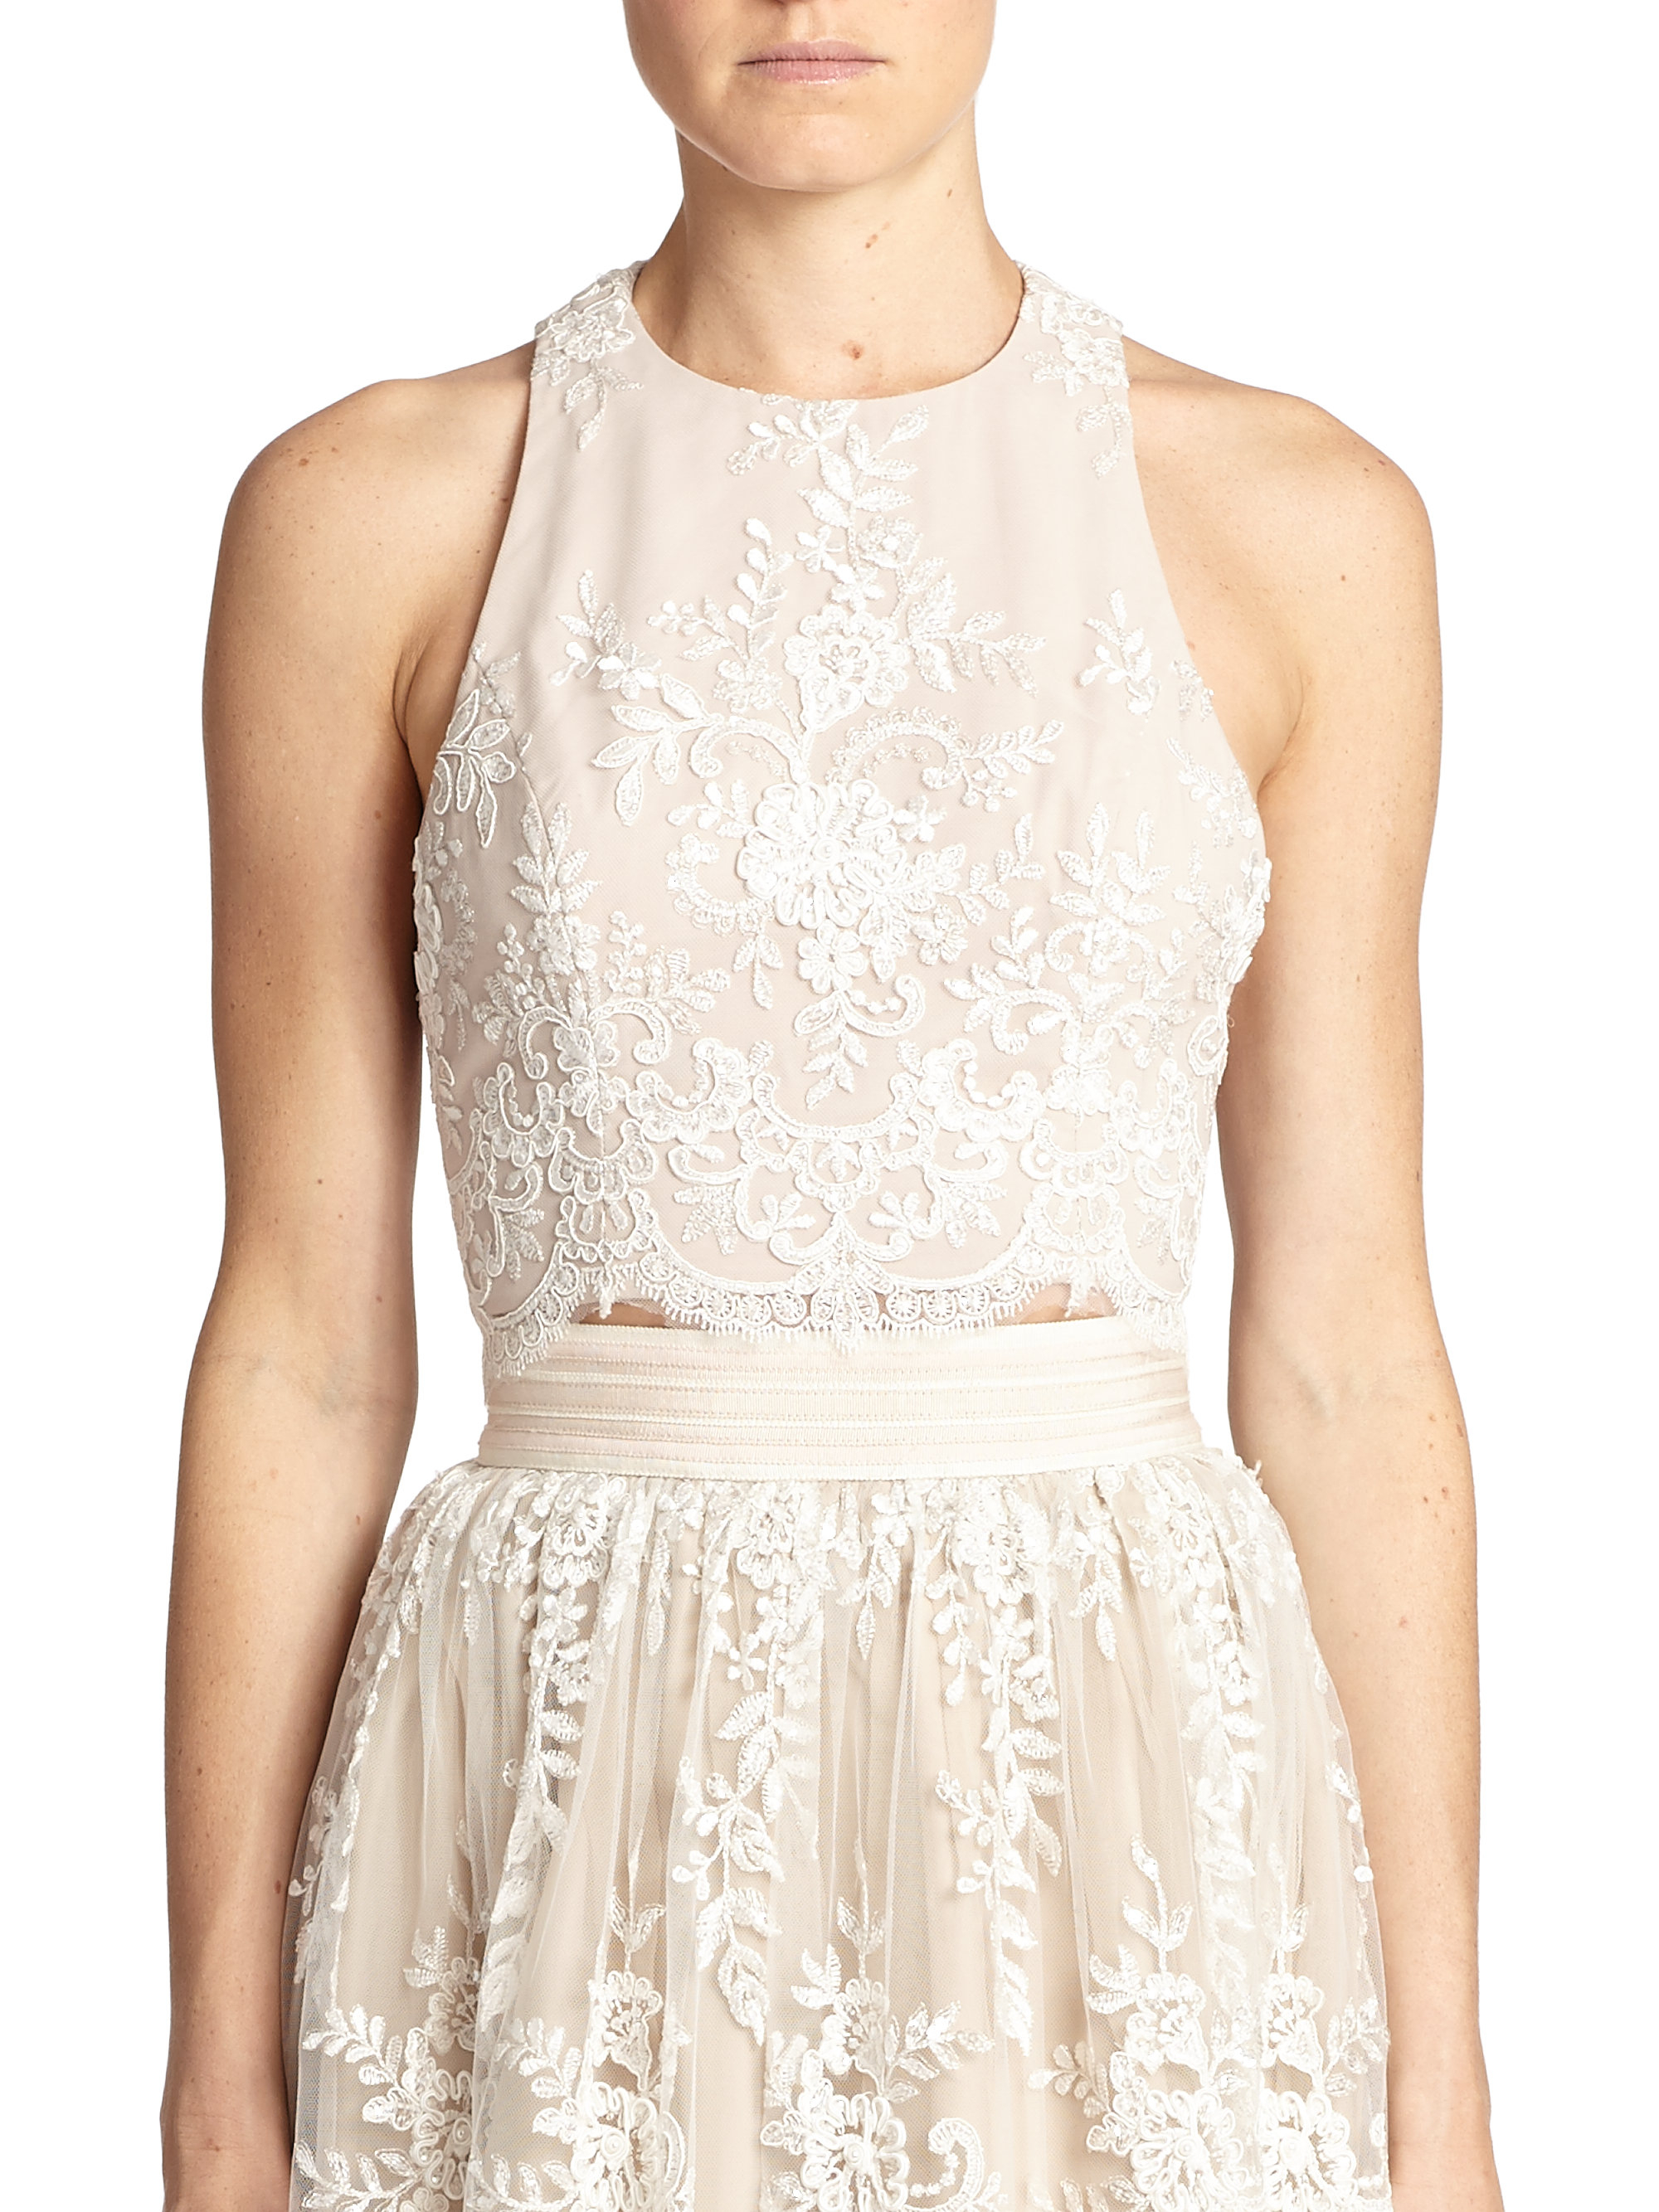 524cc4522c6 Lyst - Alice + Olivia Blythe Lace-Overlay Cropped Top in White